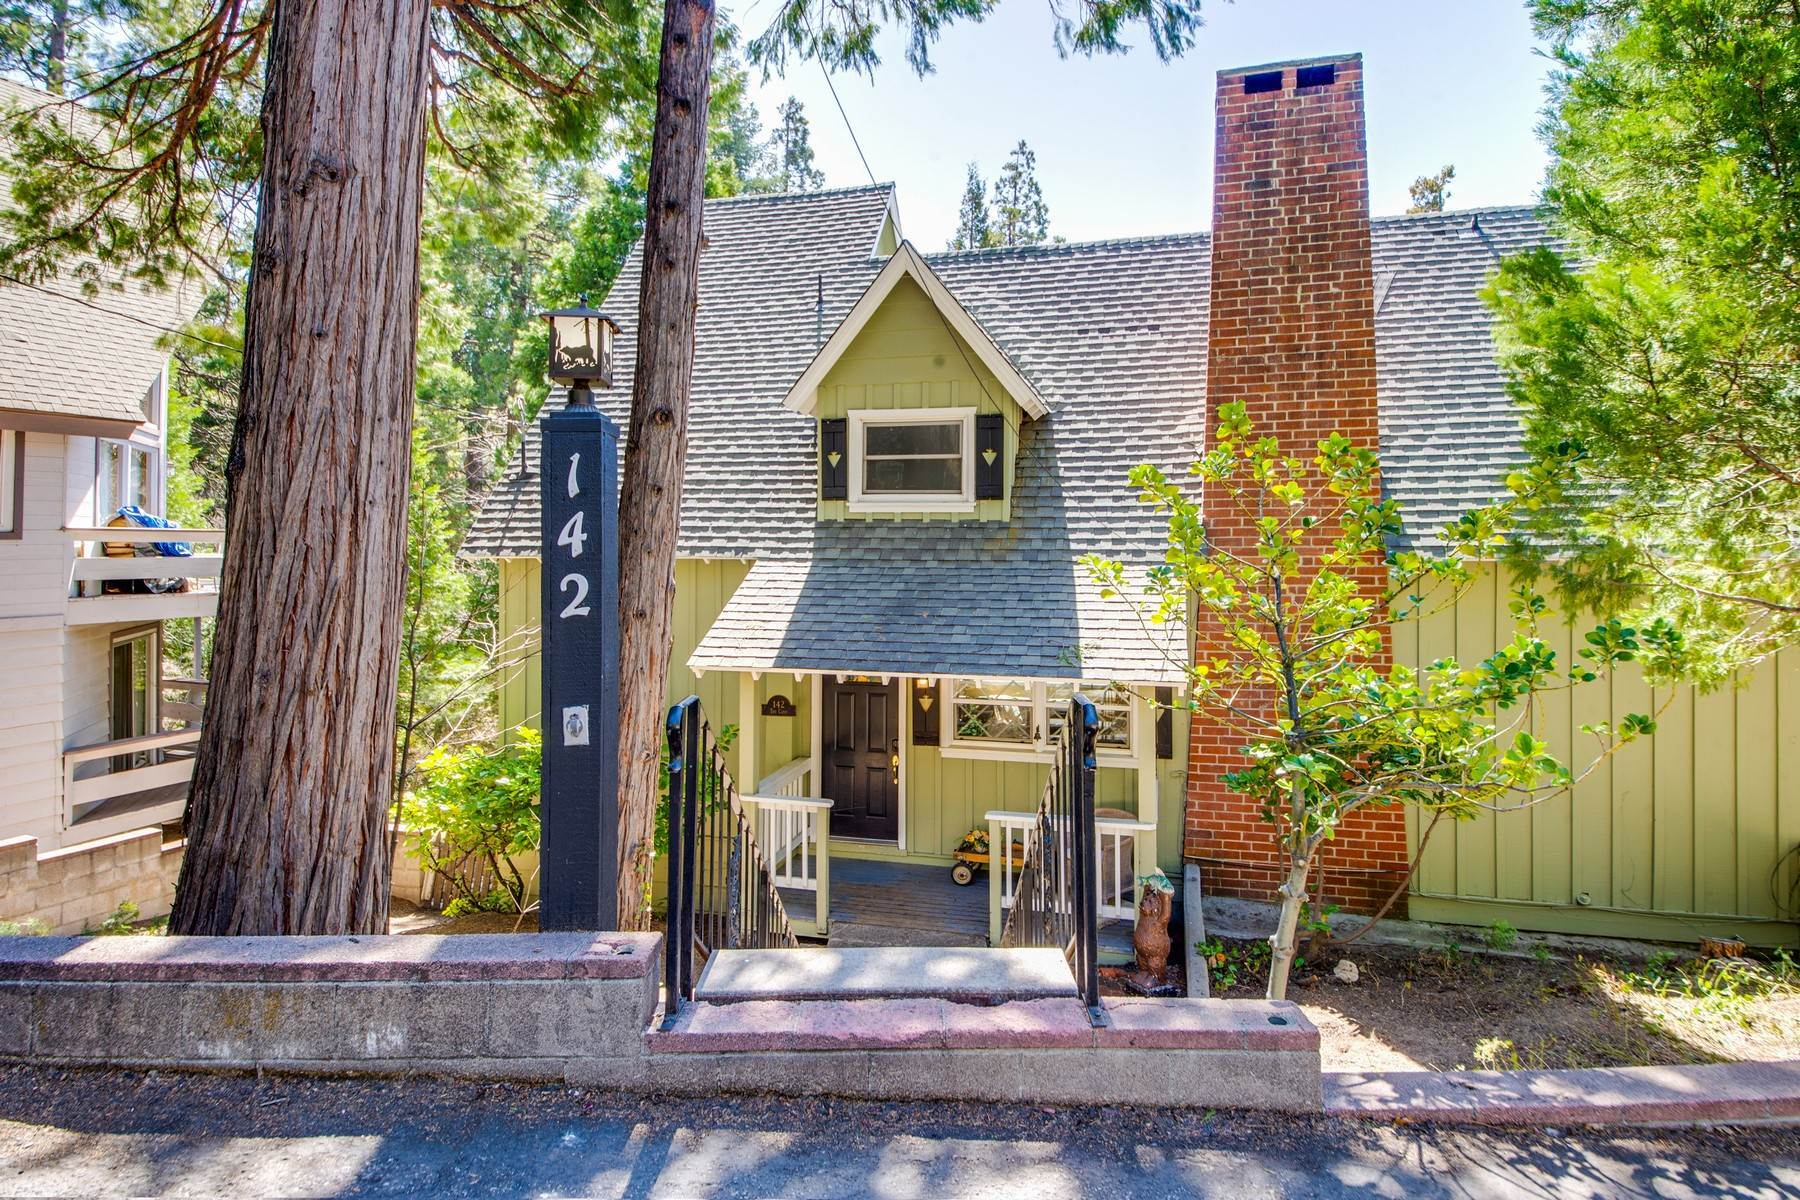 Property للـ Sale في 142 John Muir Rd Lake Arrowhead, California 92352 United States